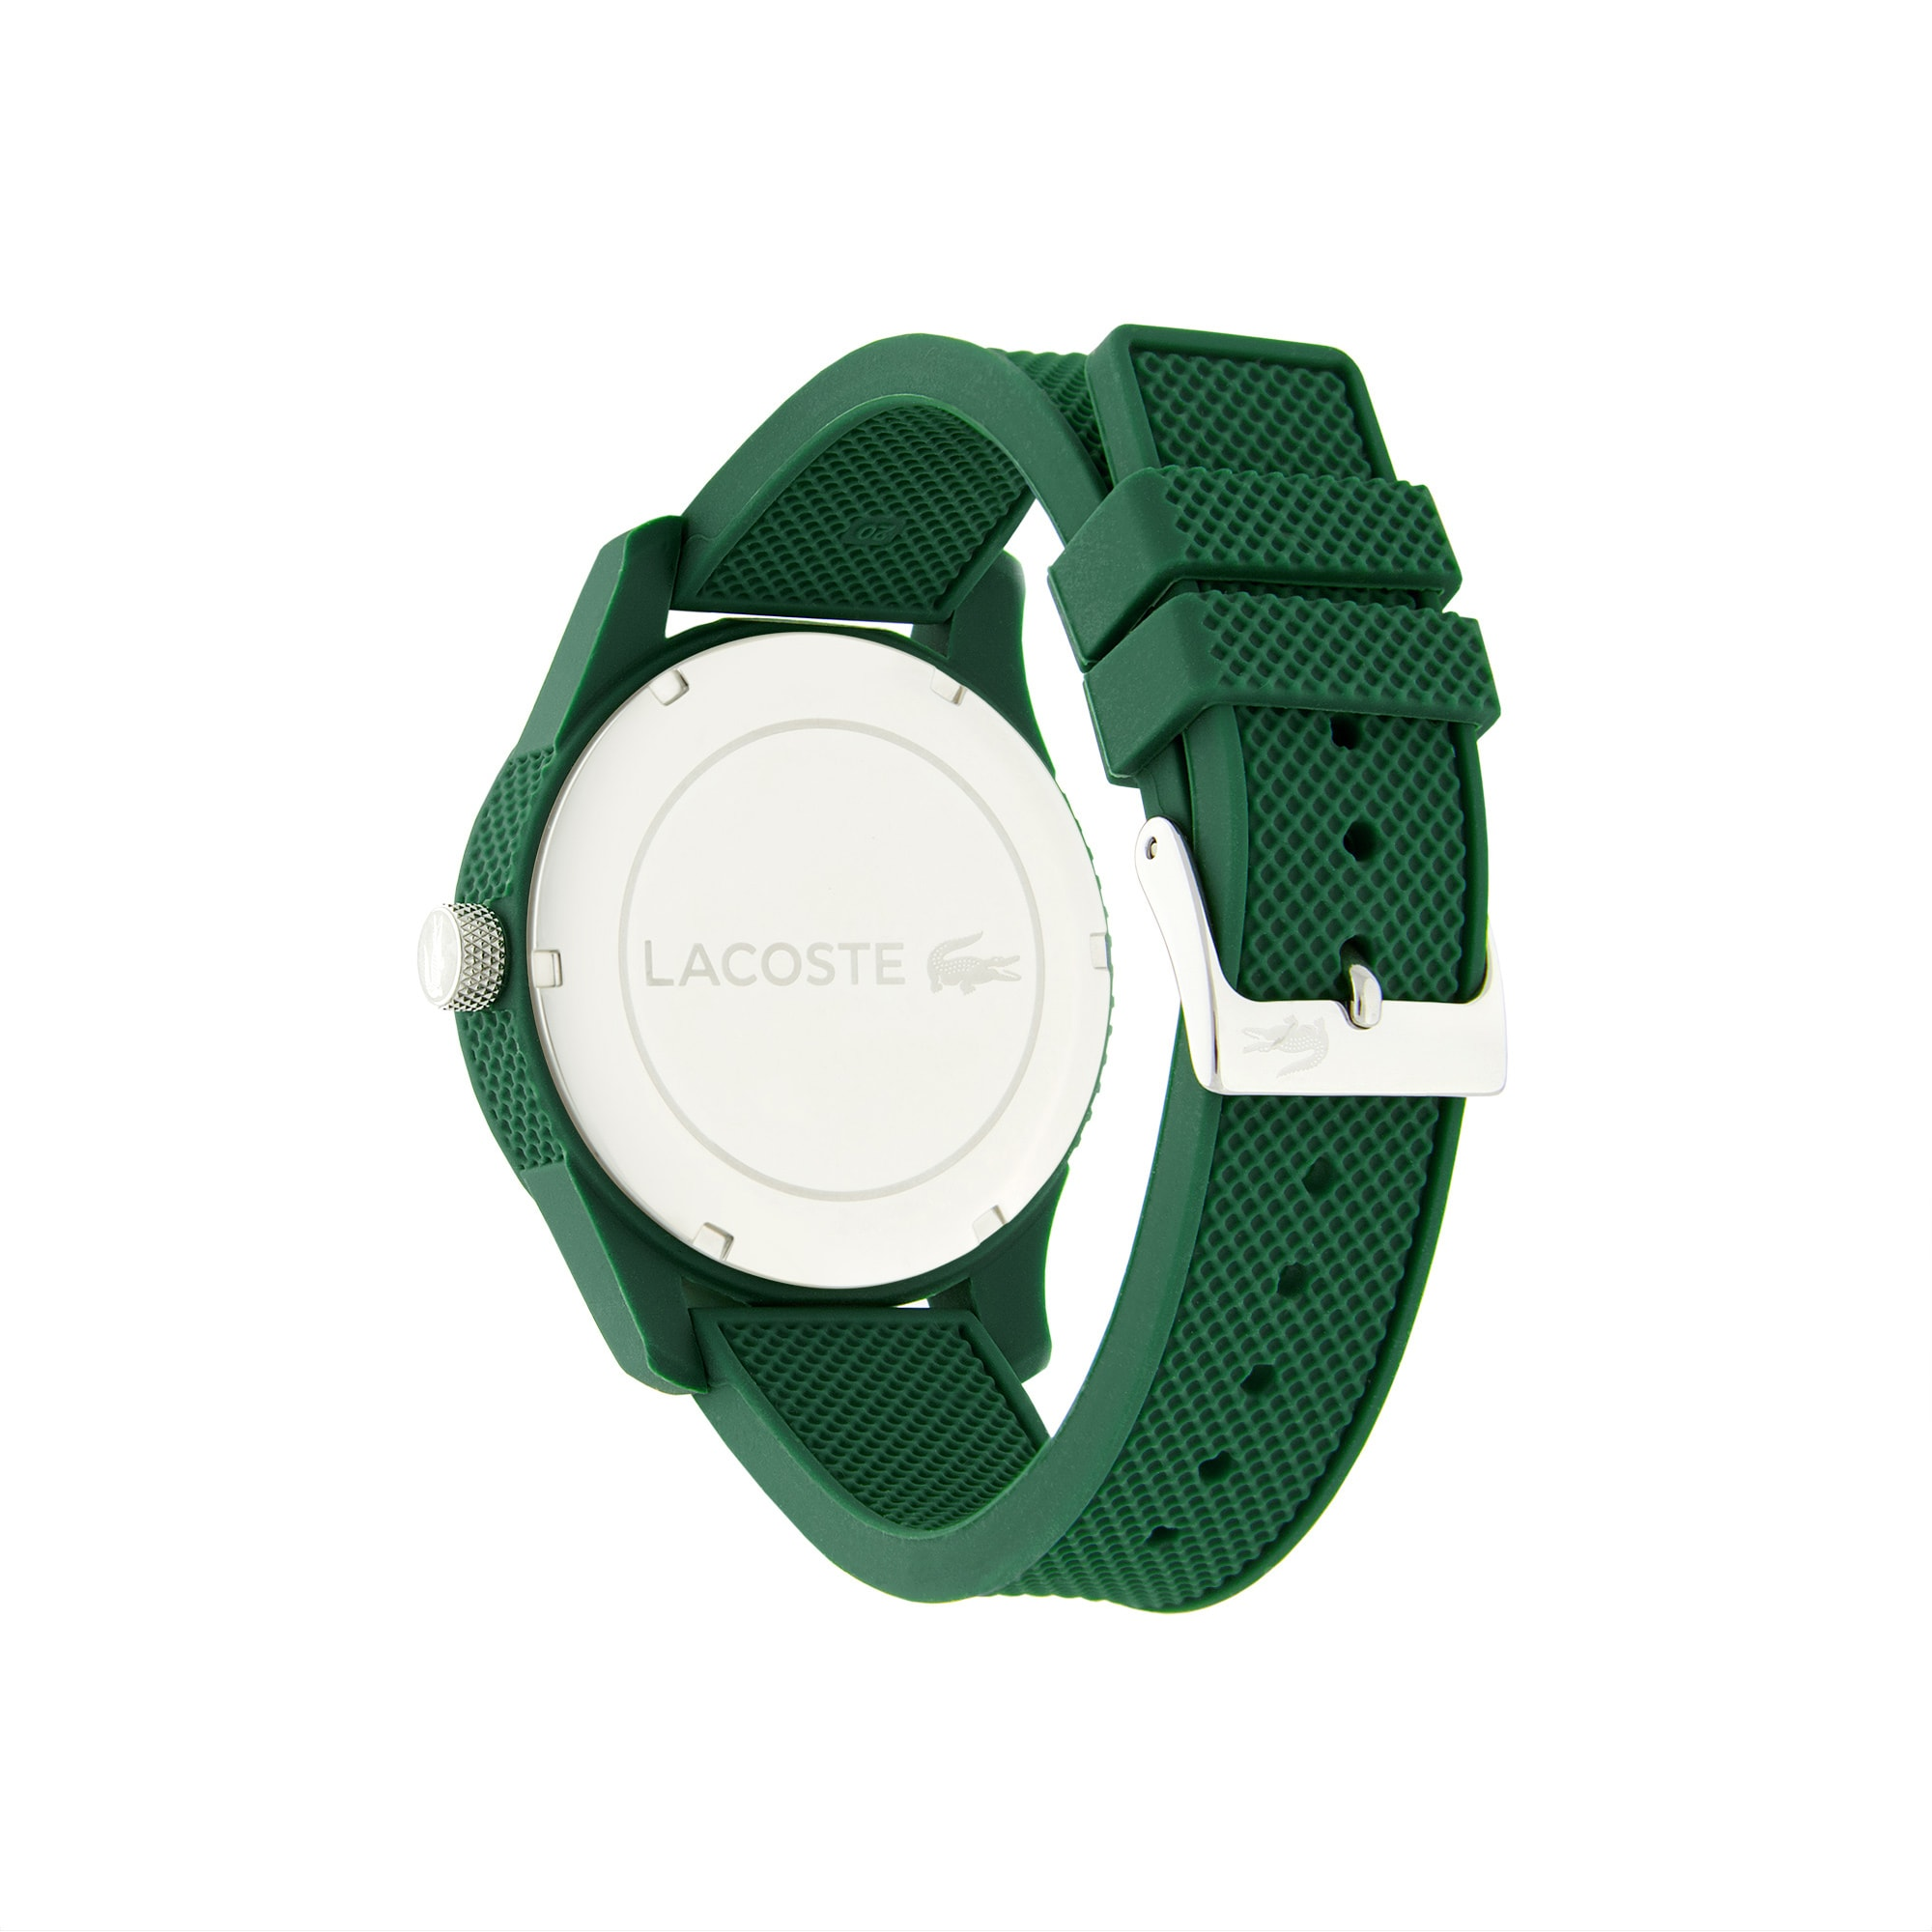 Men's Lacoste 12.12 Watch with Green Silicone Strap